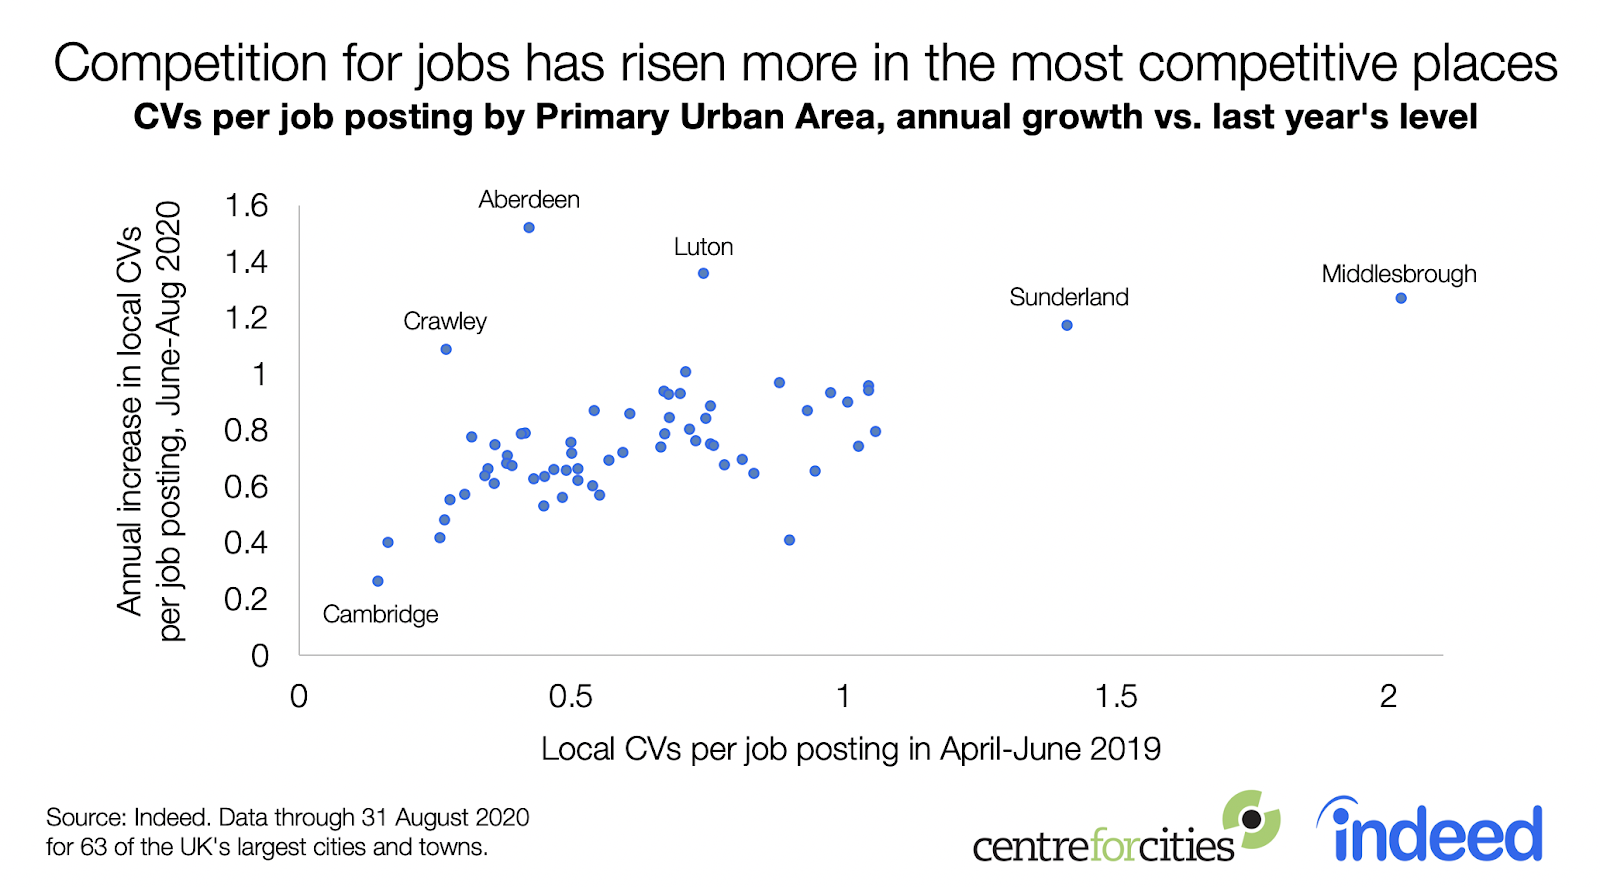 line chart competition for jobs has risen more in most competitive places UK